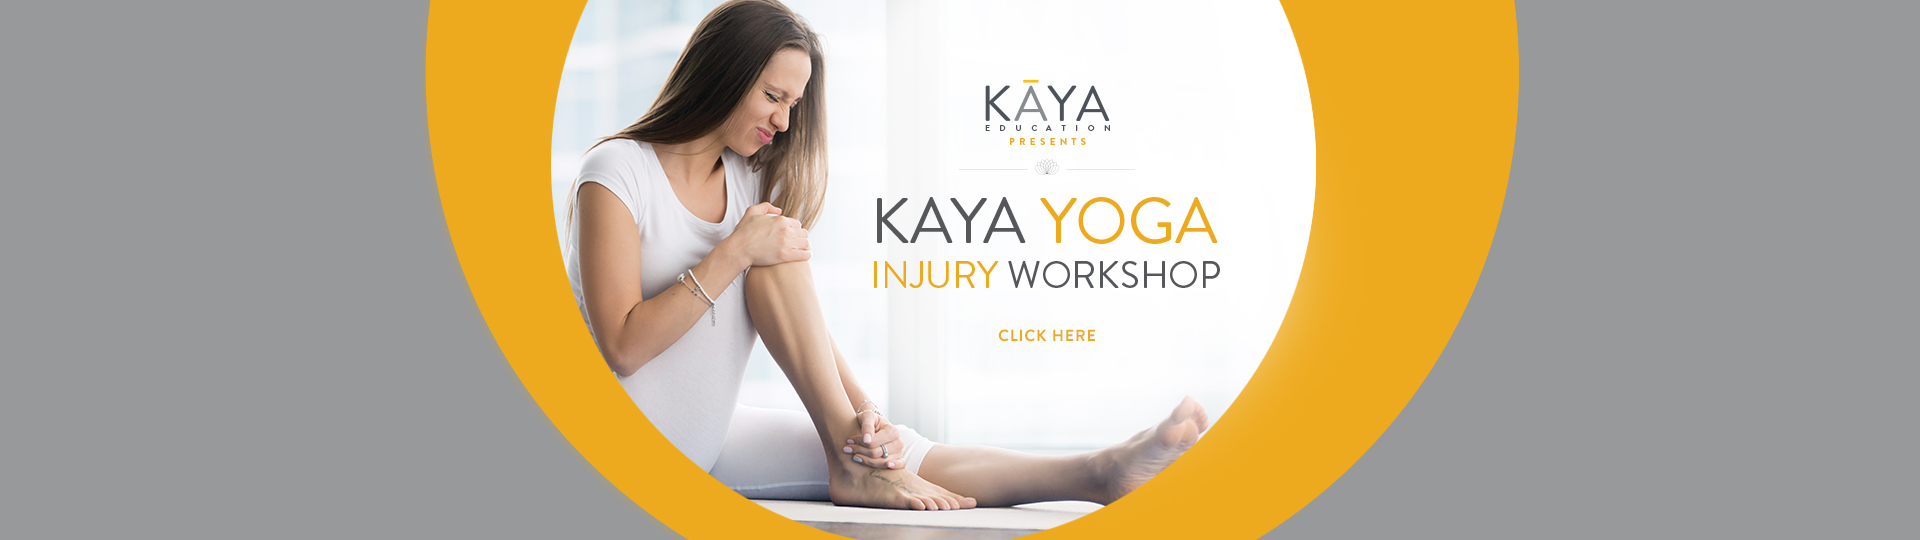 0578_KAYA_NOVEMBER_Slider_Yoga-Injury_12.21.18